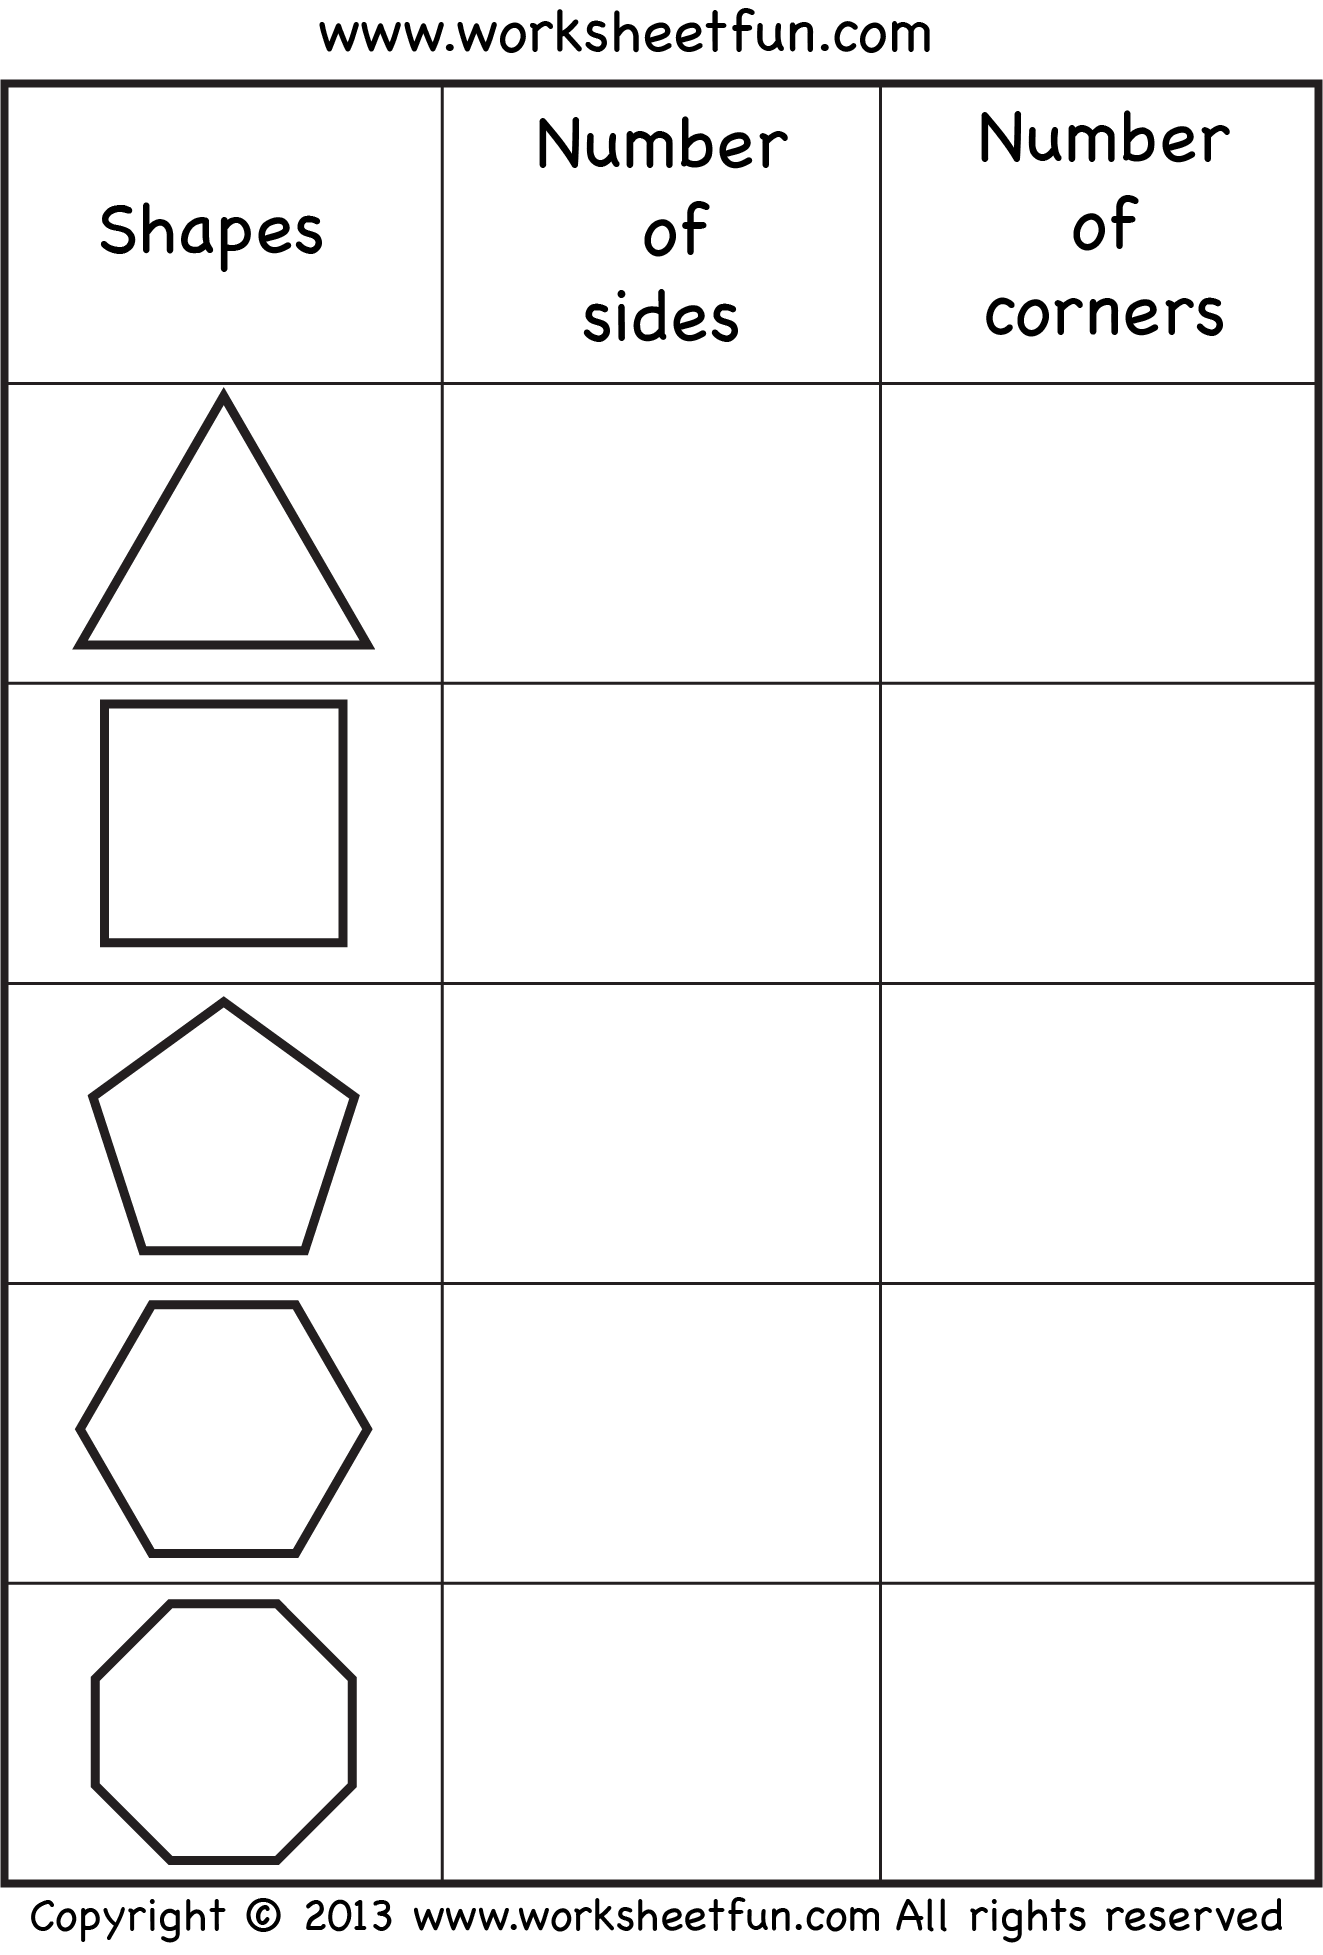 Sides And Corners Number Of Sides Number Of Corners Triangle Square Pentagon Hexagon